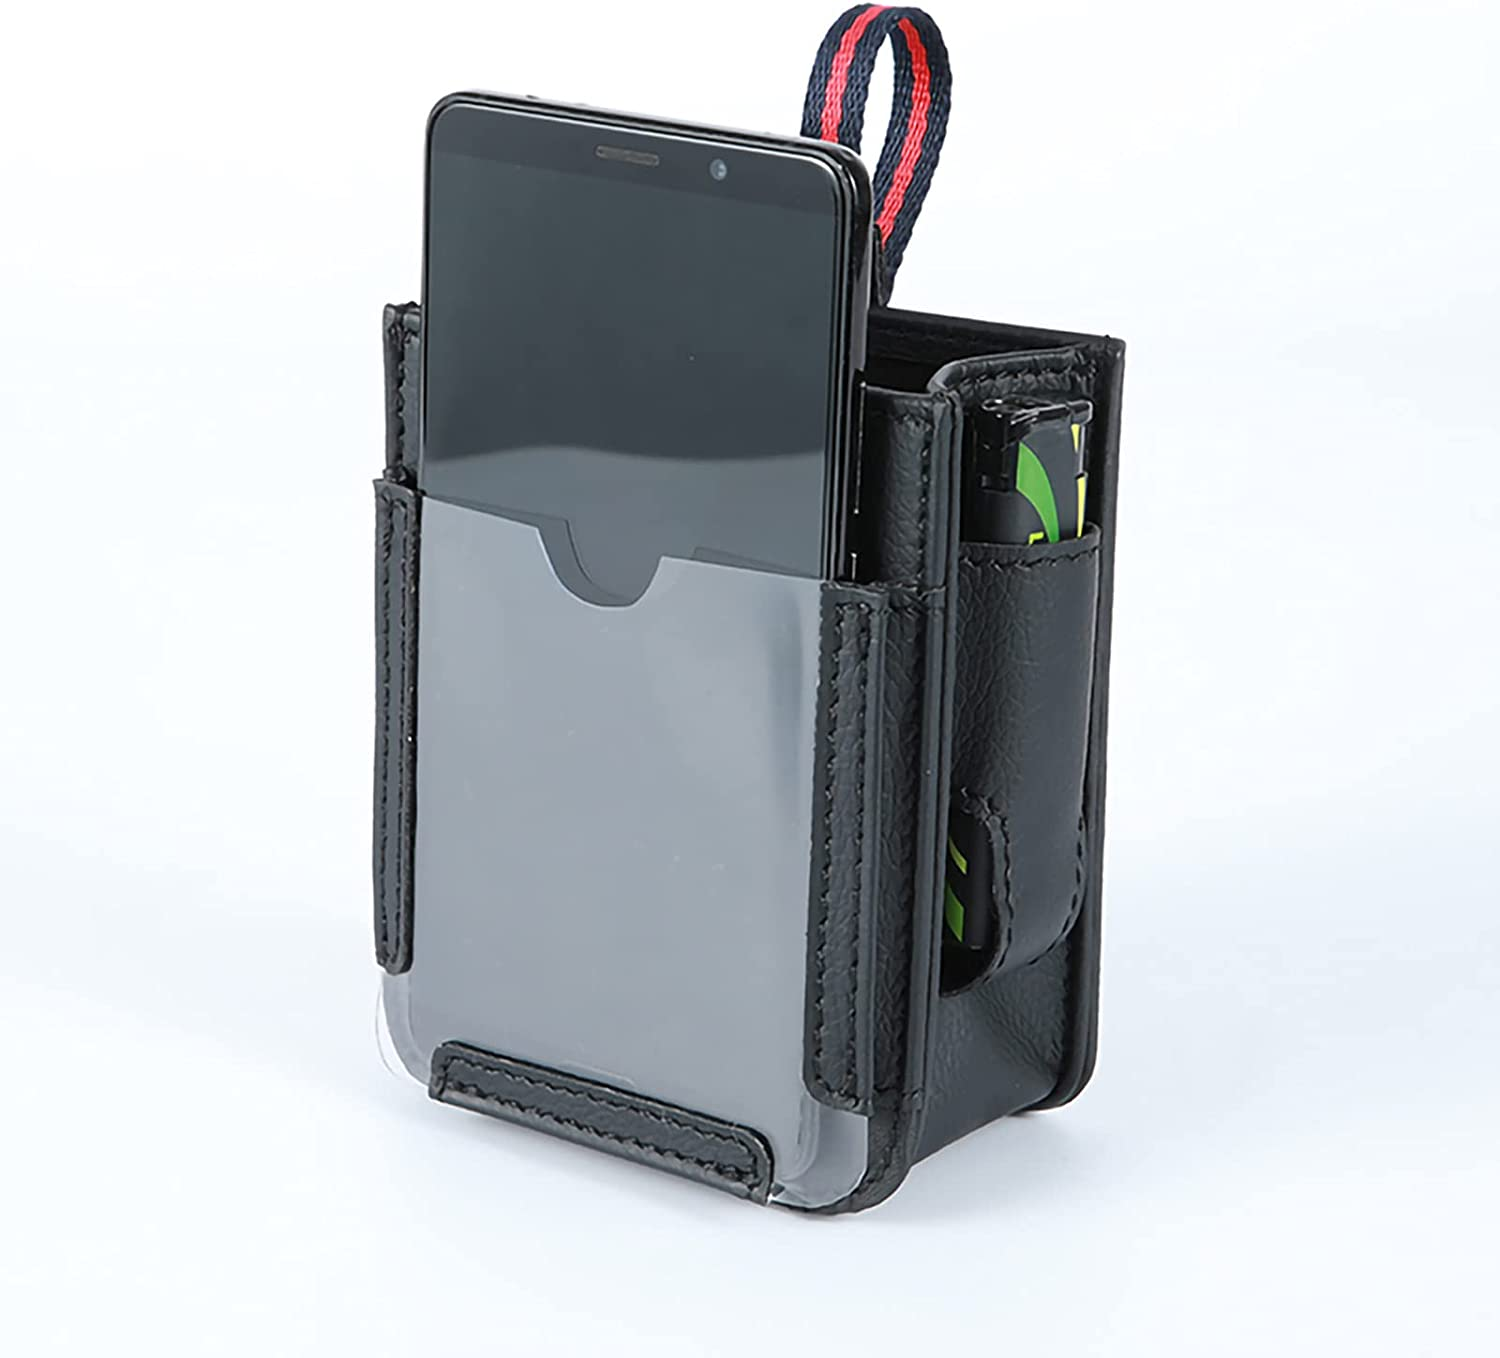 Airpocar In a popularity - Multi-Function Pockets Hanging Phone Bag Accessories Max 59% OFF